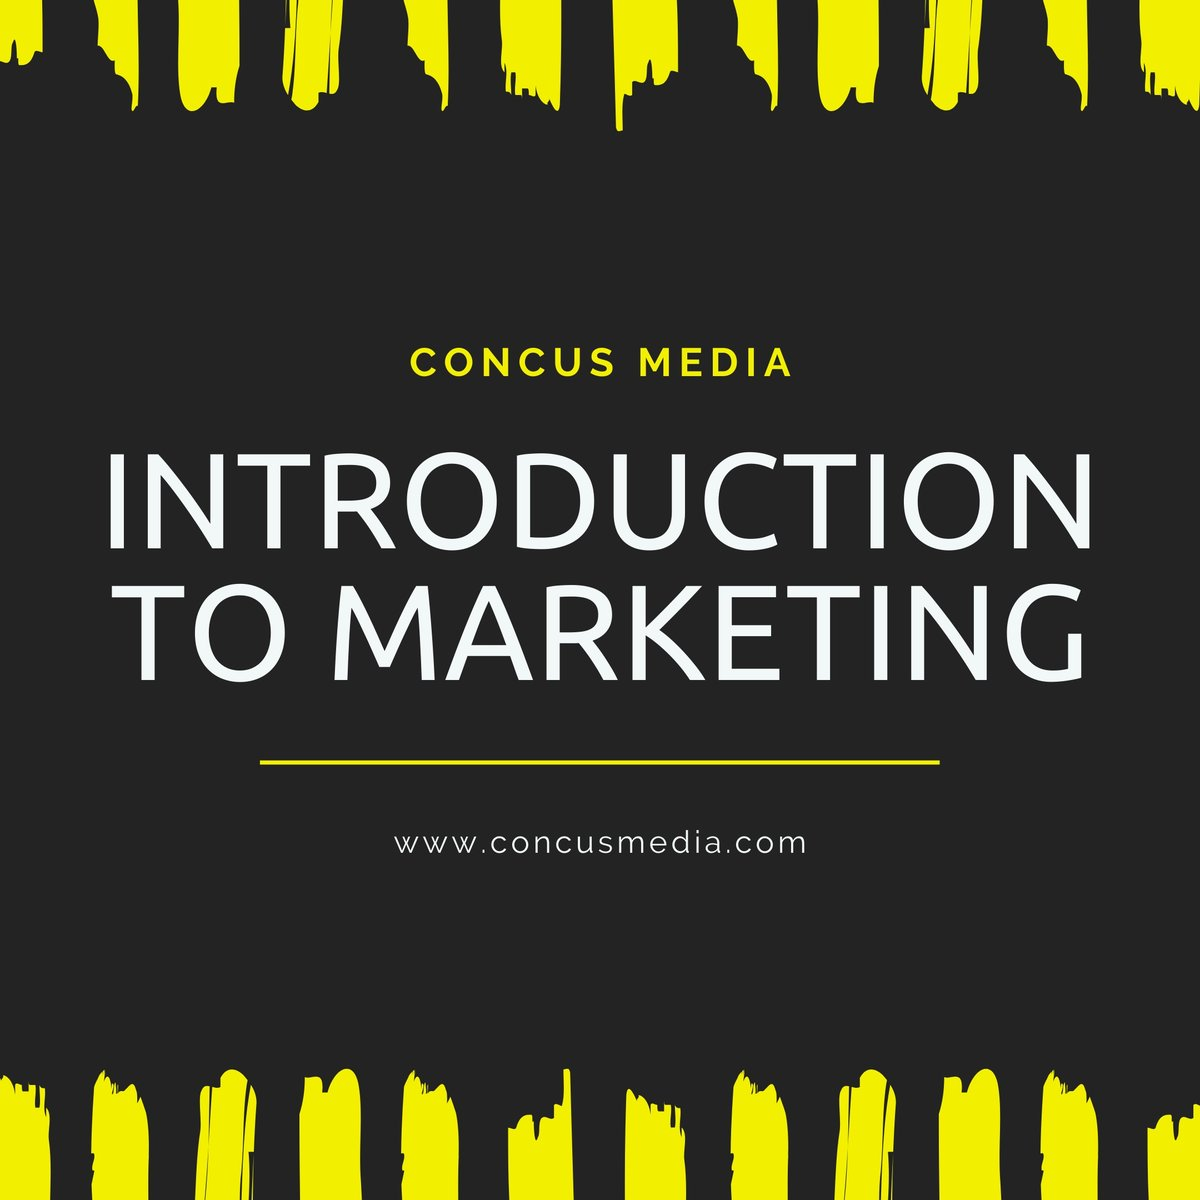 Upscale your Knowledge With Us  Want to Know More About Marketing Please Click on  Below Link http://www.concusmedia.com/  #marketing #digitalmarketing #digitalmarketingtips #knowledge #introductiontomarketing #blog #marketingblogpic.twitter.com/lEeyasedQQ